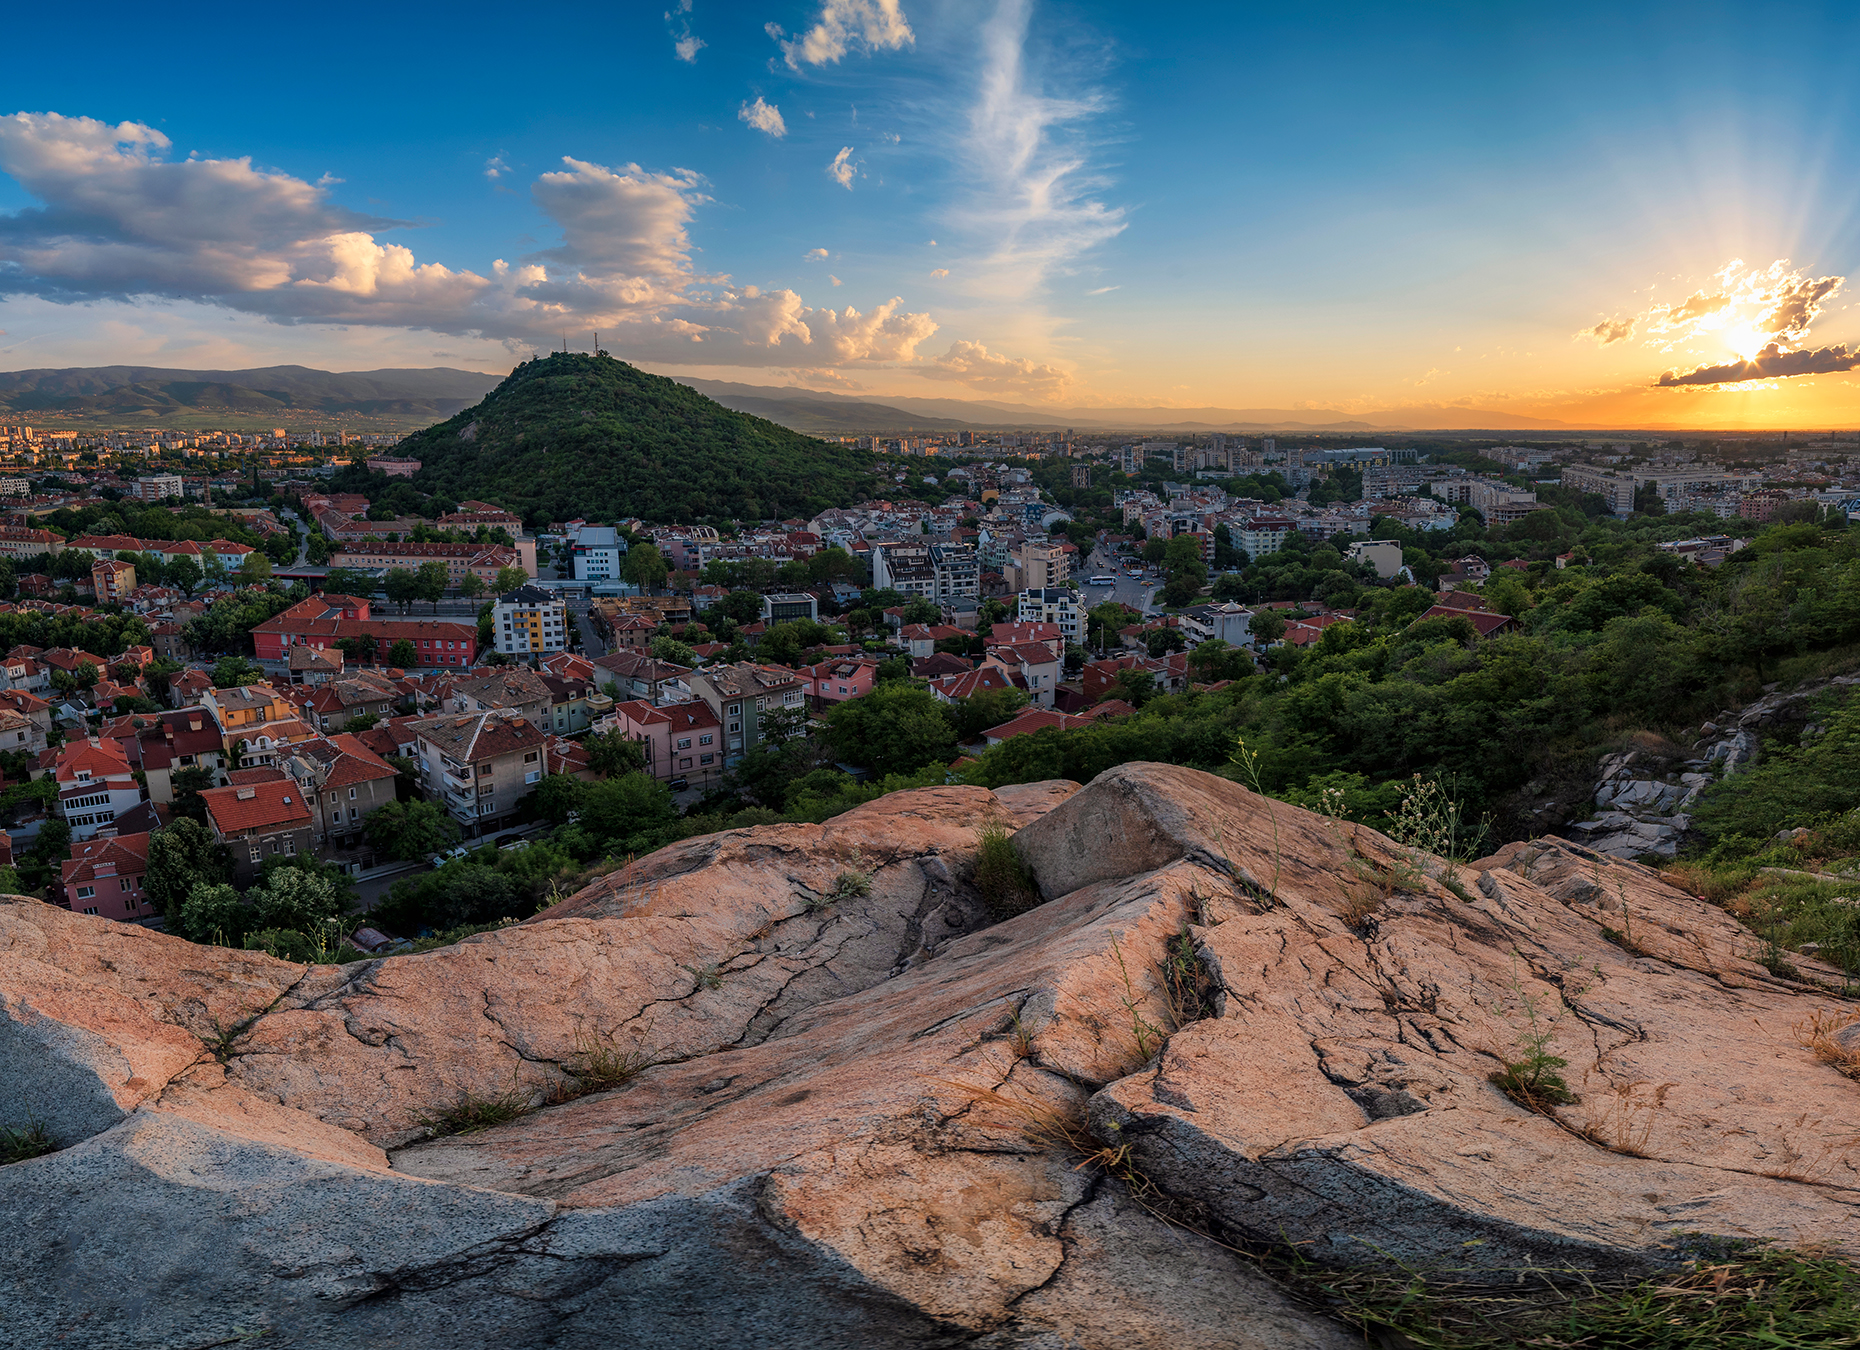 Plovdiv at sunset